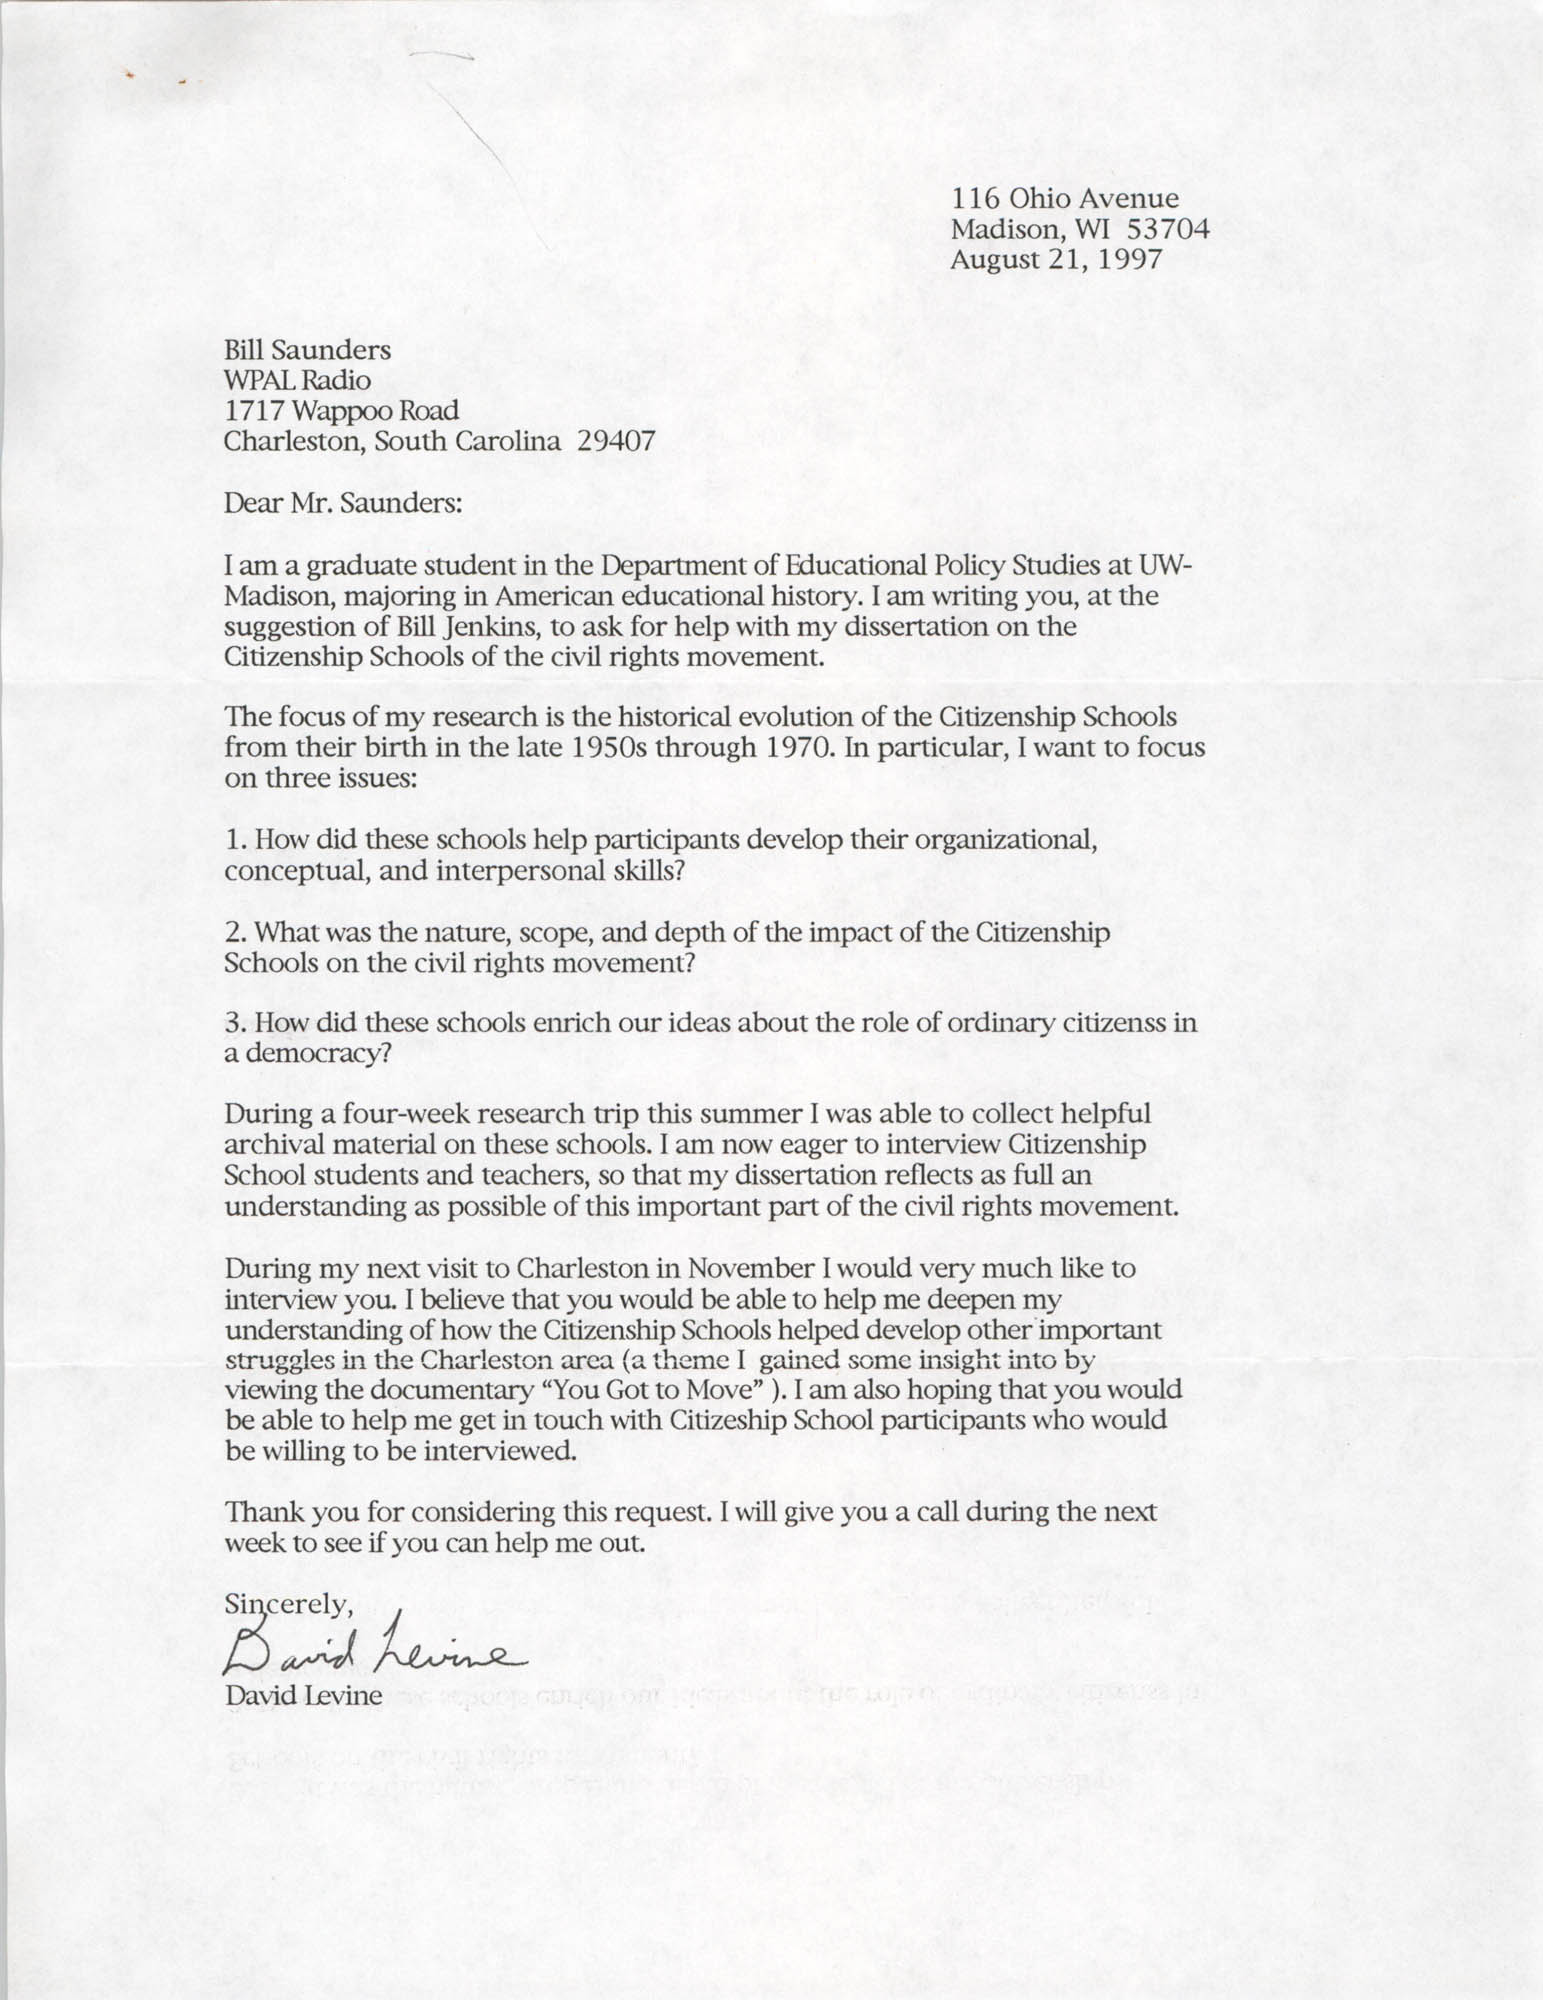 Letter from David Levine to William Saunders, August 21, 1997